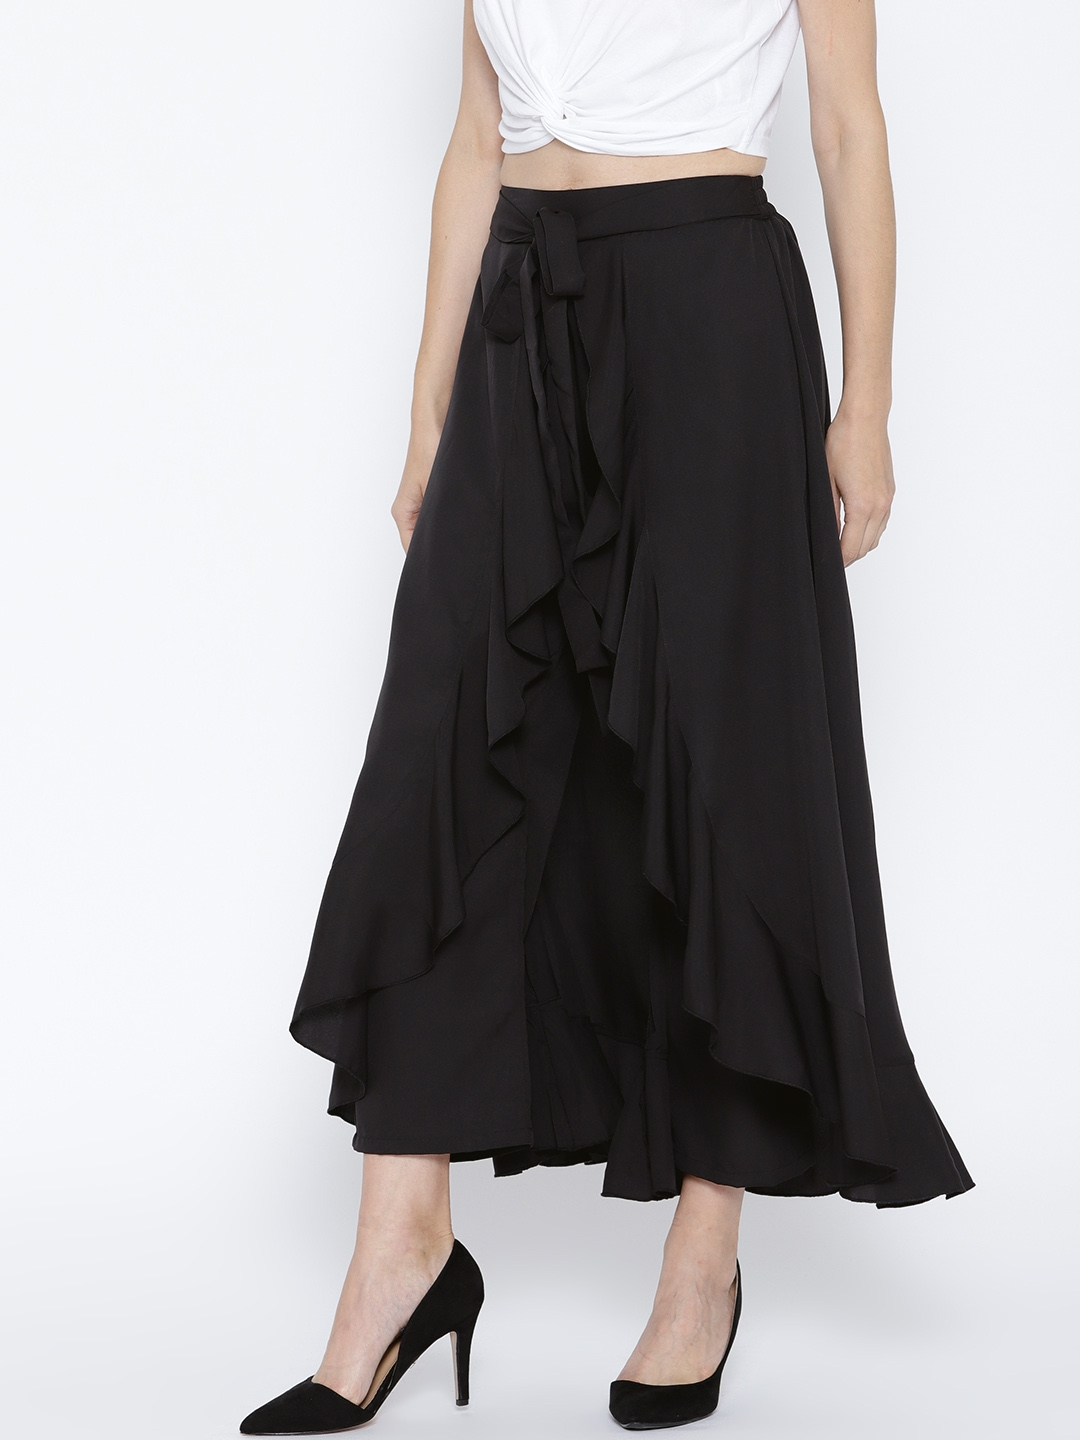 1c5a01bc37 Berrylush Black Solid Ruffled Flared Maxi Skirt with Attached Trousers